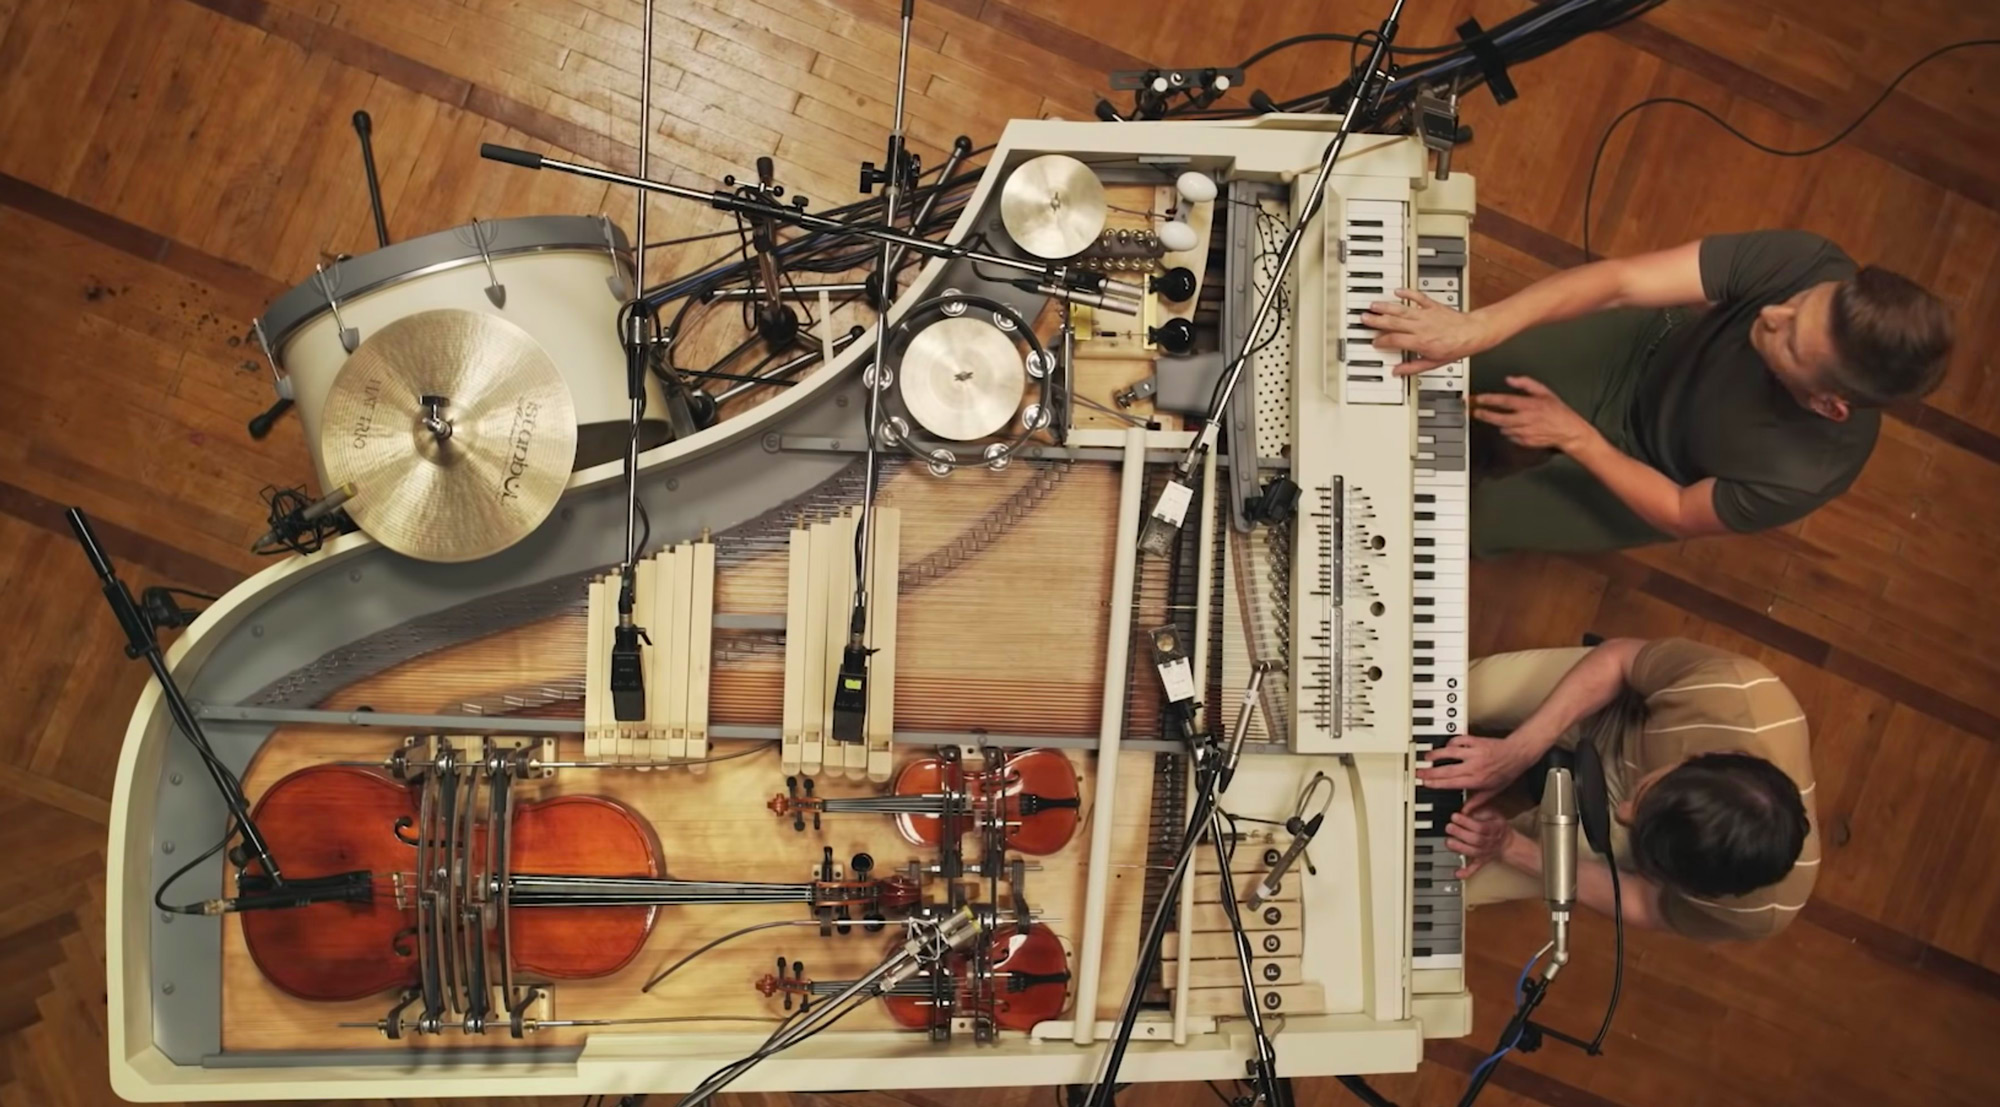 A Vintage Grand Piano Gets Reengineered to Play 20 Different Instruments with a Push of Its Keys